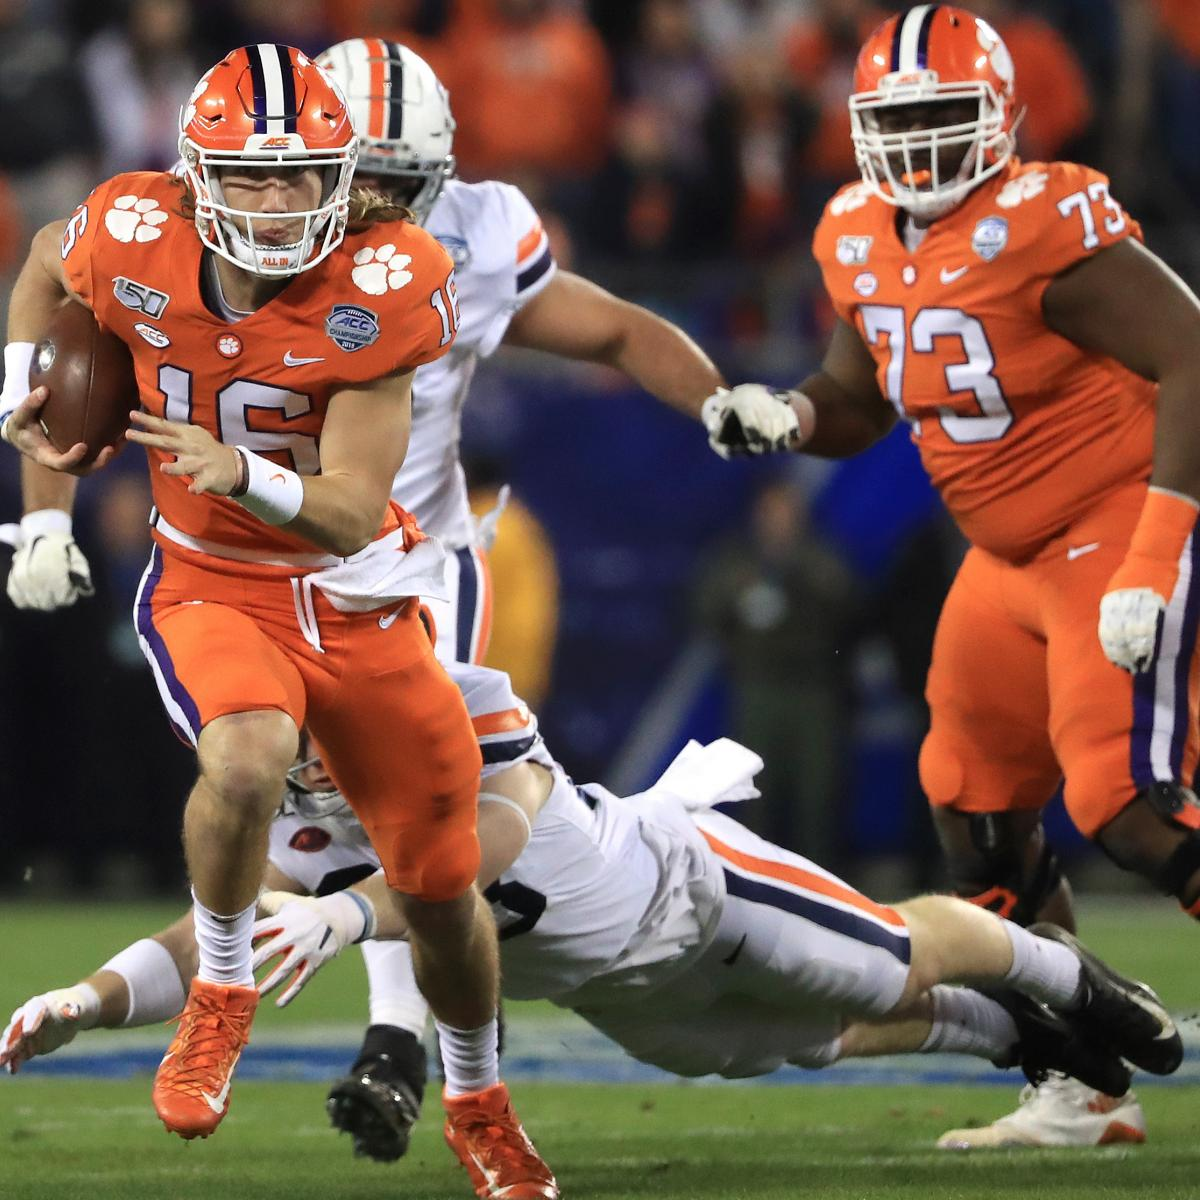 Bowl Games Schedule 2019 20 Top Games And Odds For